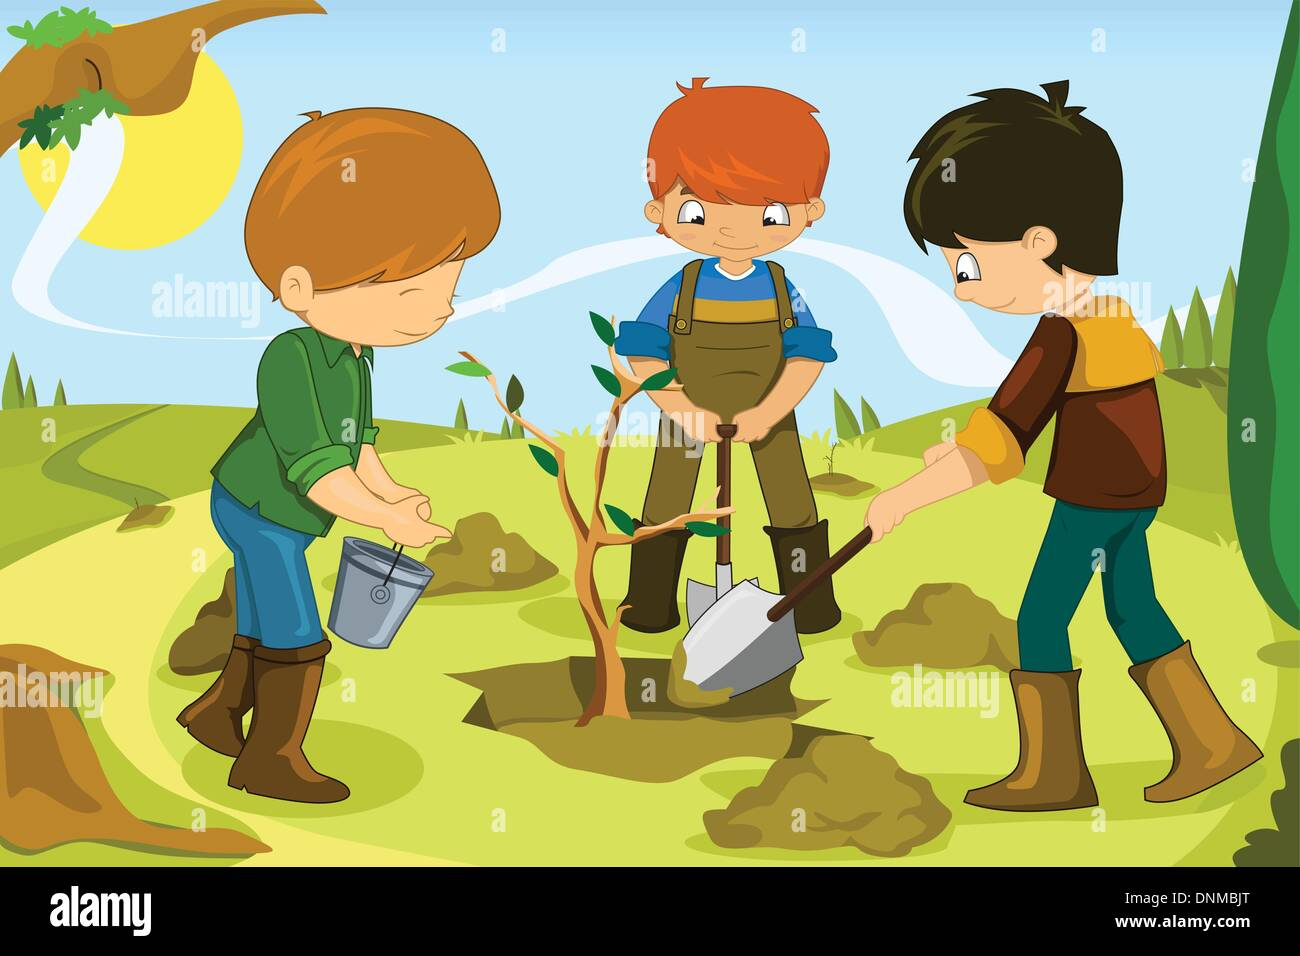 people working together outside stock vector images alamy